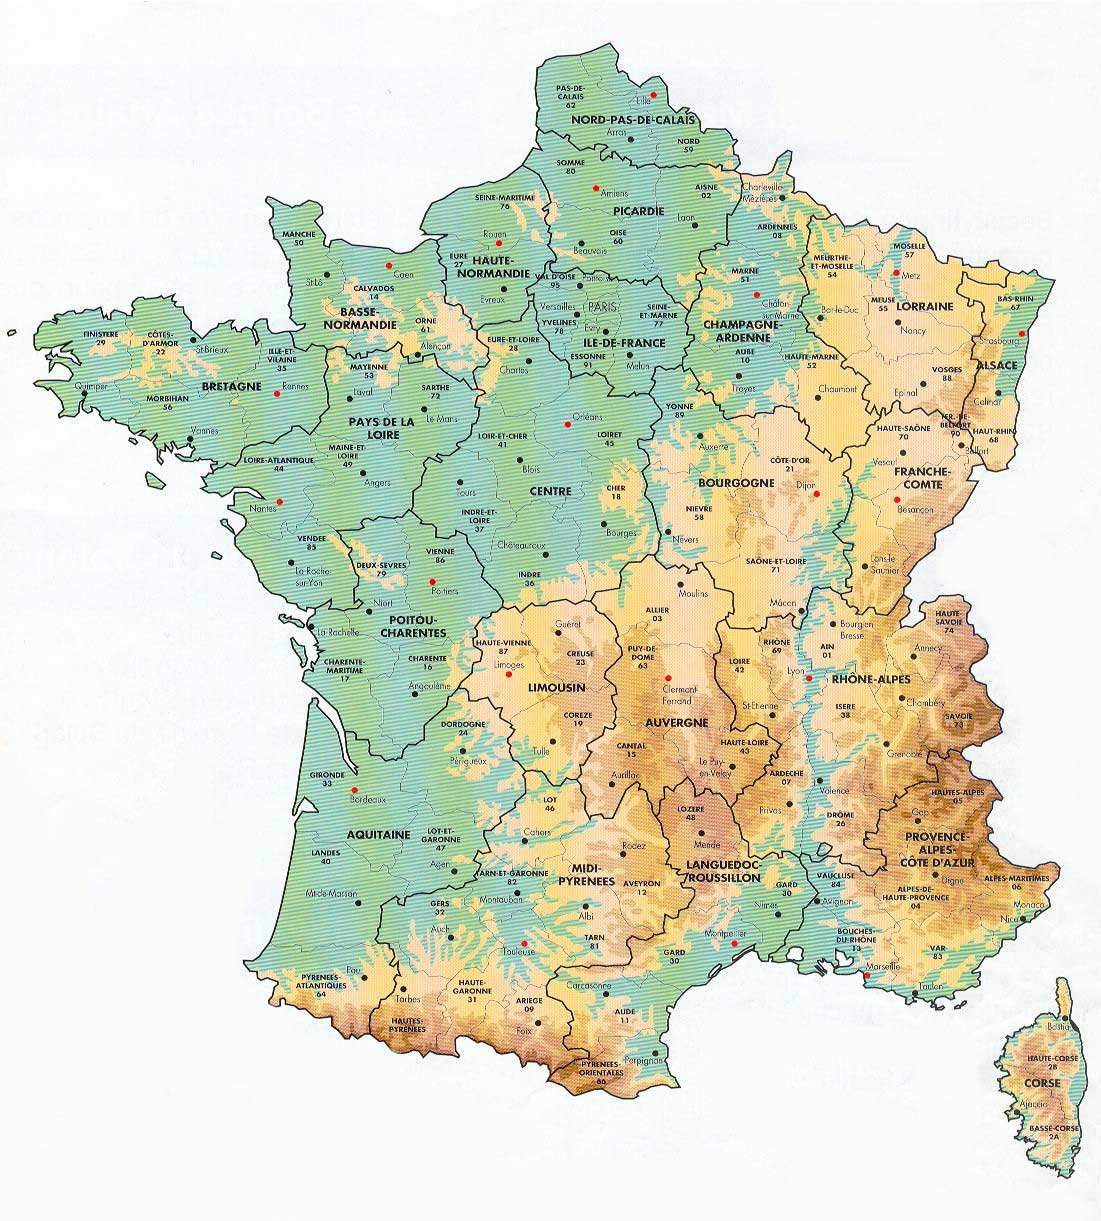 graphic about Printable Map of France named Maps of France - BonjourLaFrance - Productive Creating, French